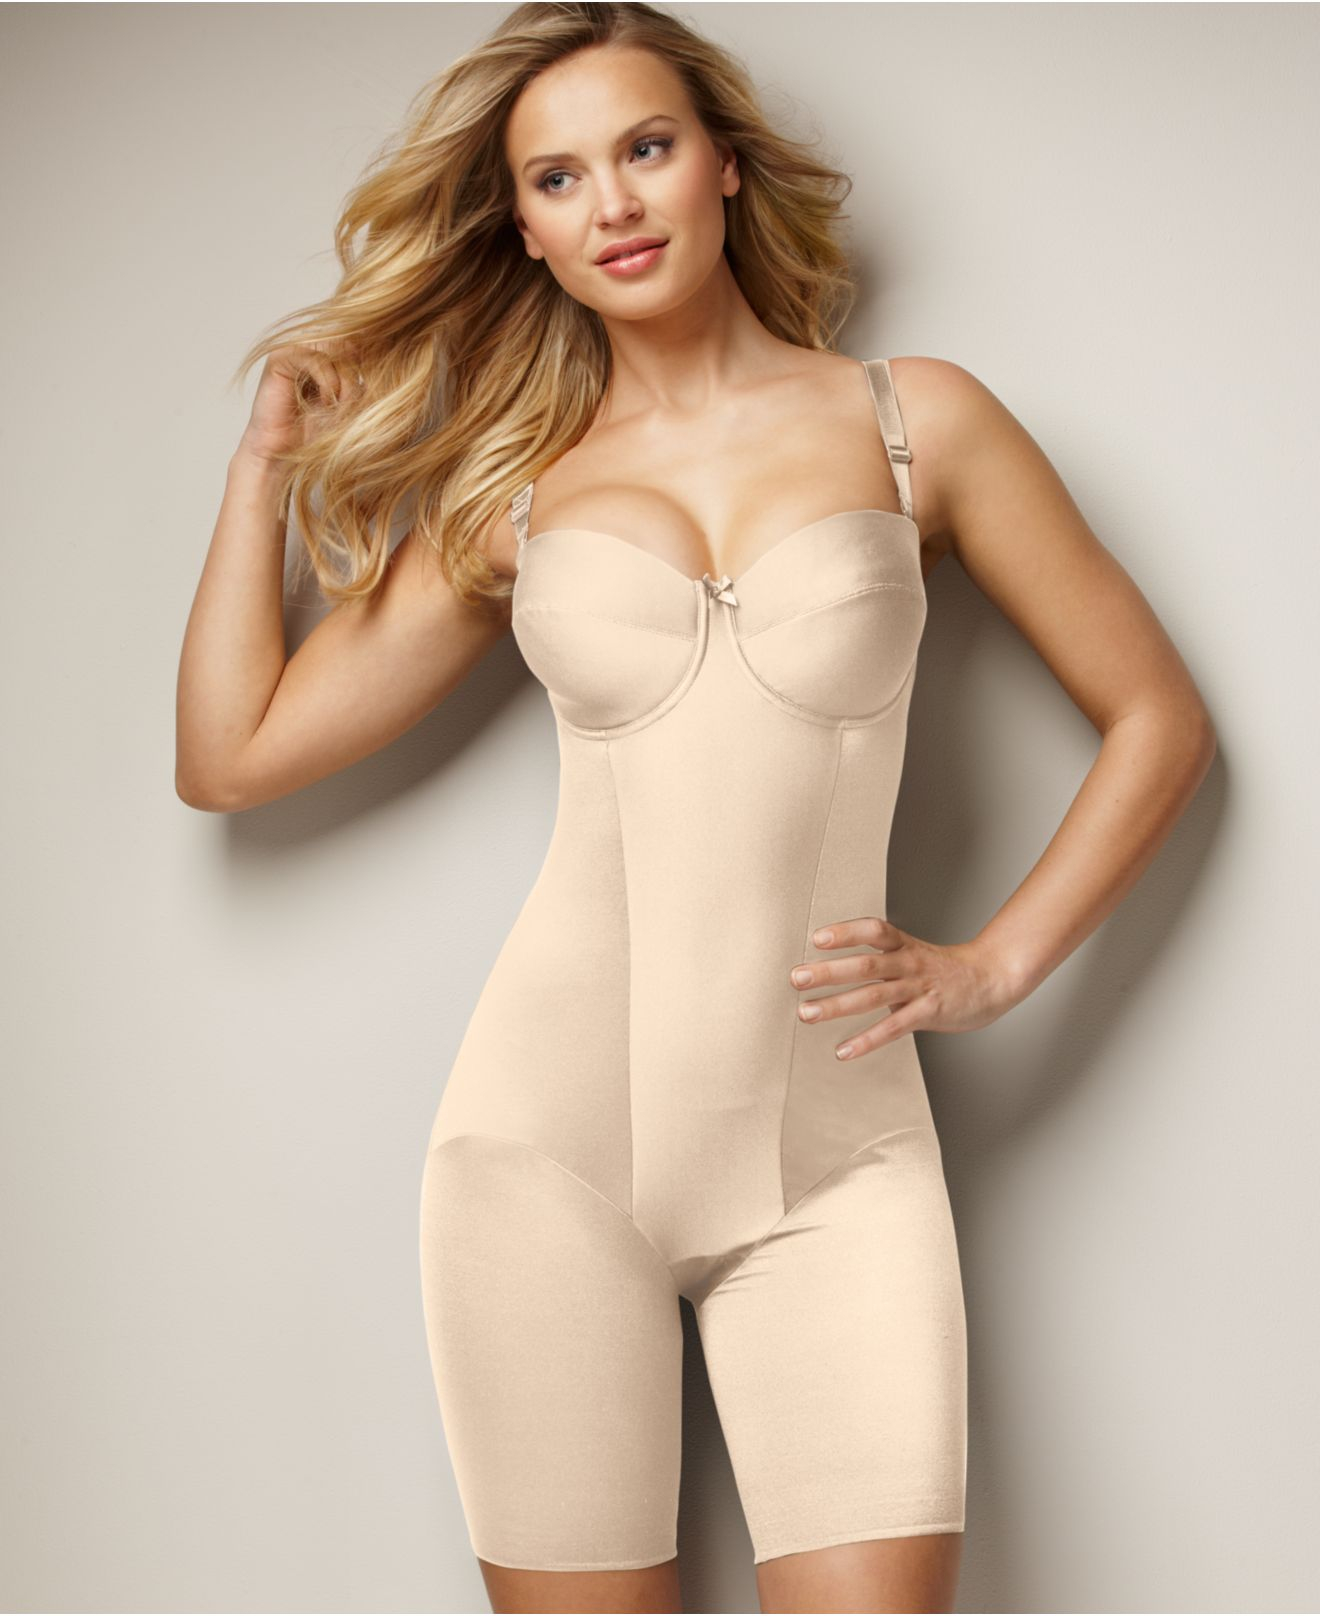 b230f85925 Lyst - Miraclesuit Extra Firm Control Strapless Thigh Slimming Body ...